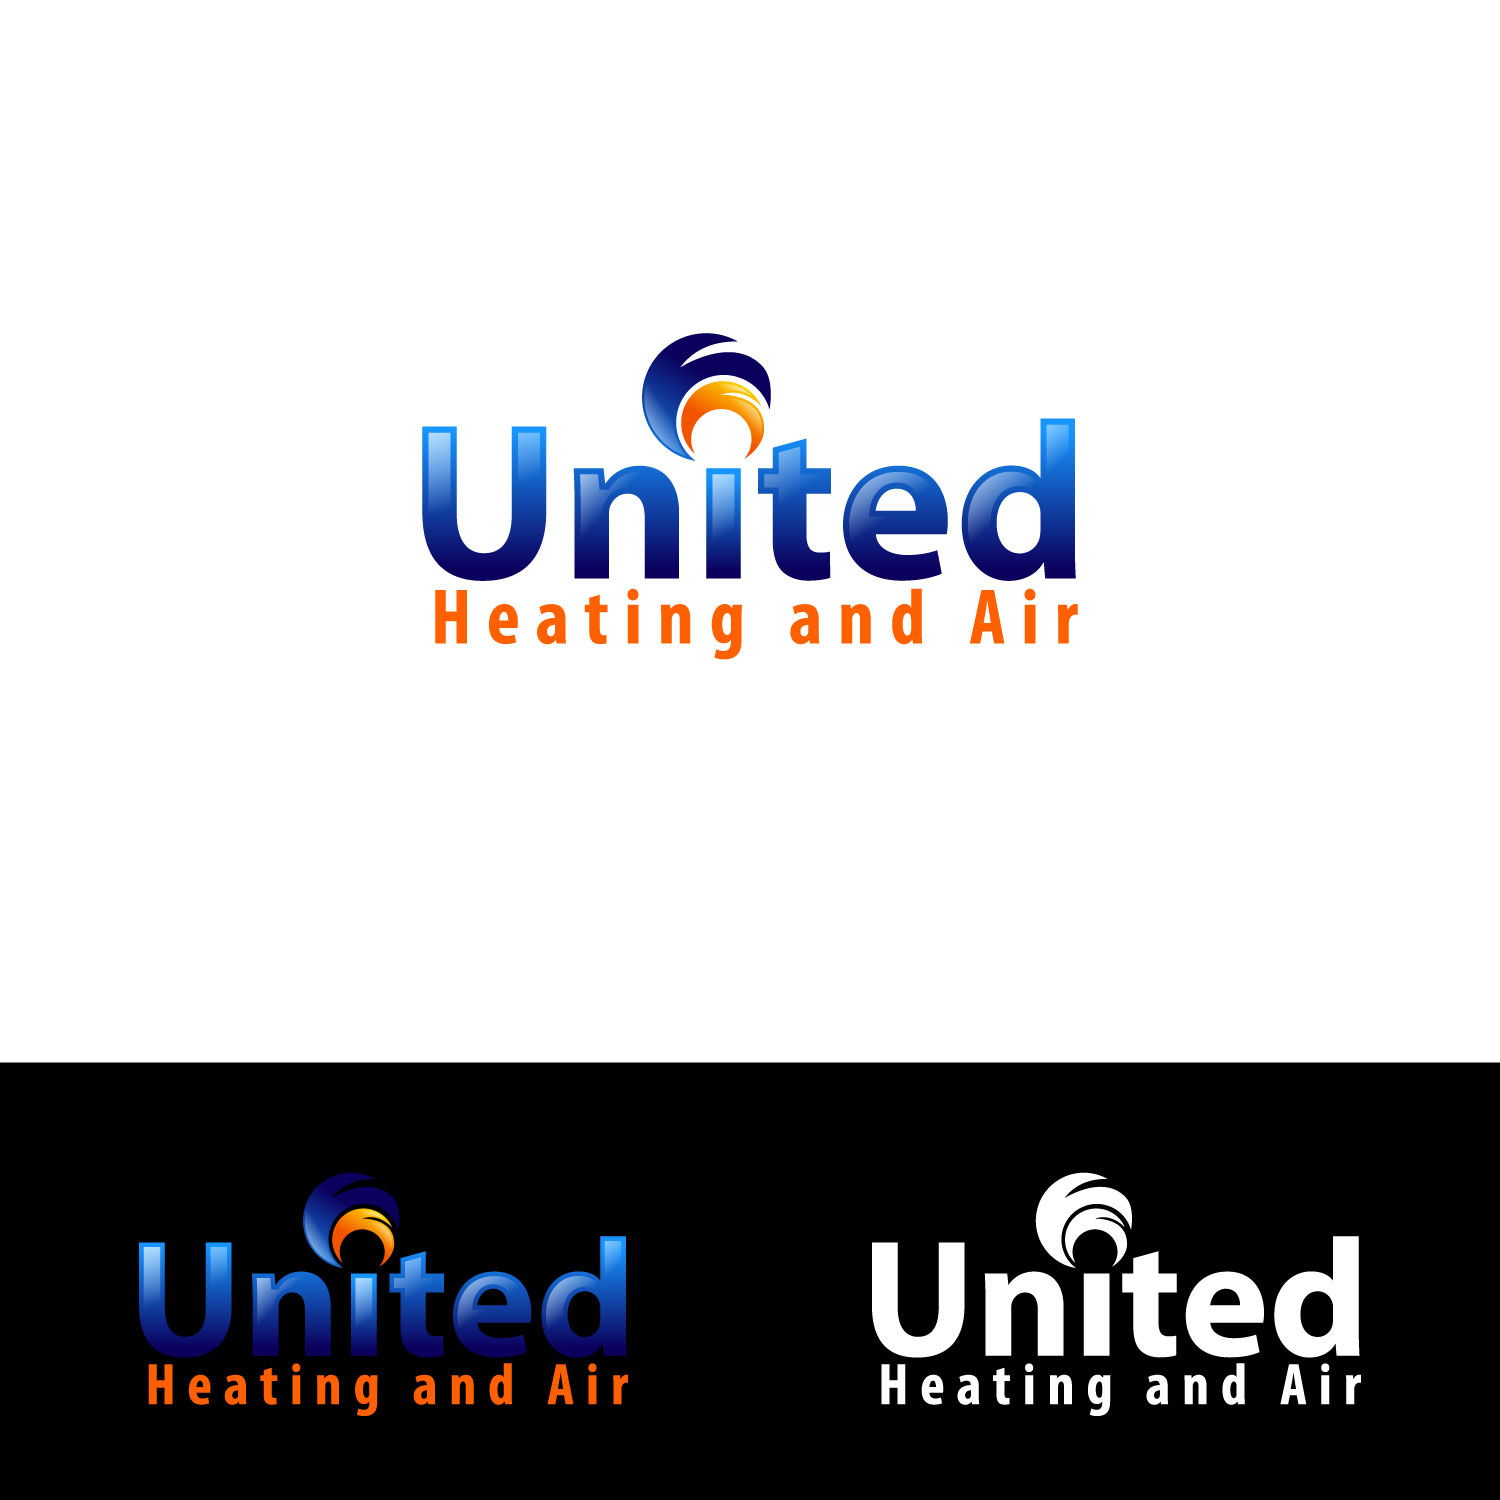 Logo Design by lagalag - Entry No. 39 in the Logo Design Contest United Heating and Air Logo Design.